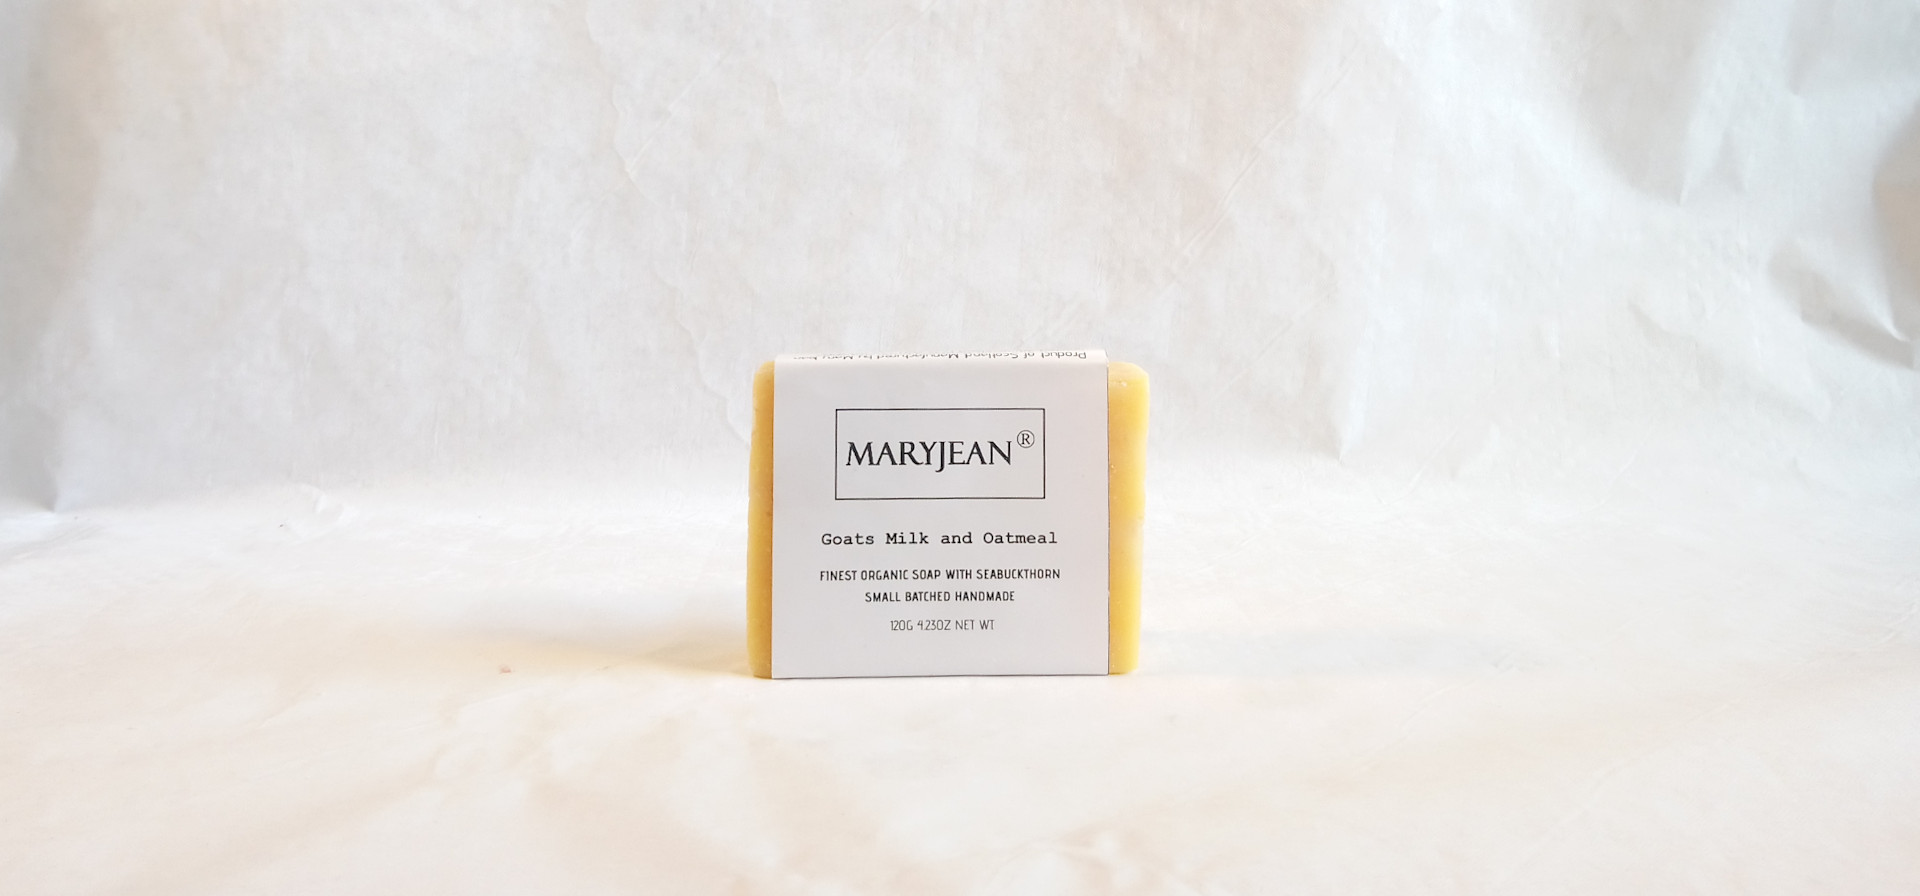 Twin Pack 2 Organic Scottish Exfoliating Body Scrub Plastic And Sulphate Free Soaps Handmade With Sea Buckthorn en_GB